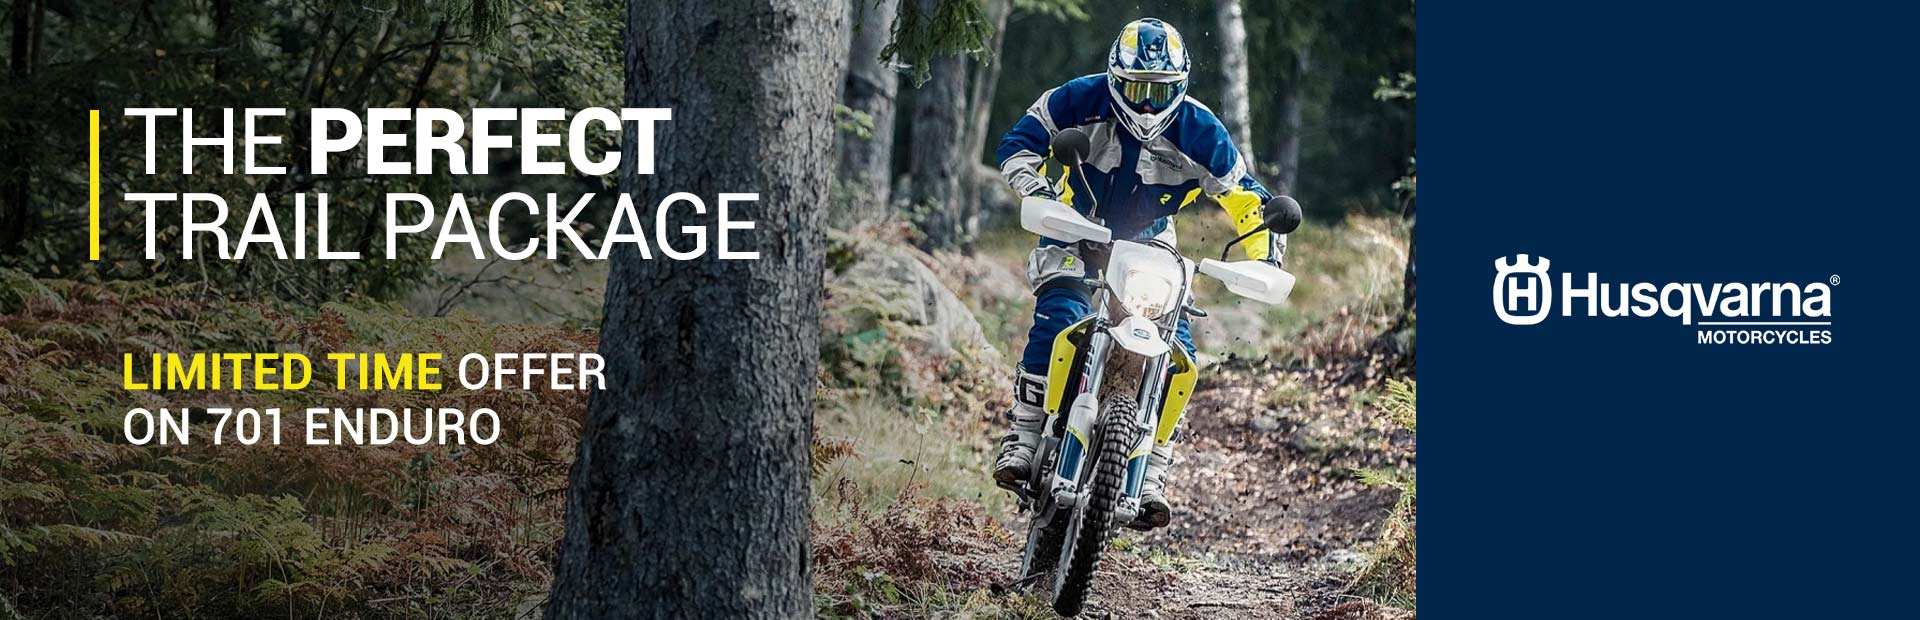 Husqvarna Motorcycles: Limited Time Offer on 701 Enduro